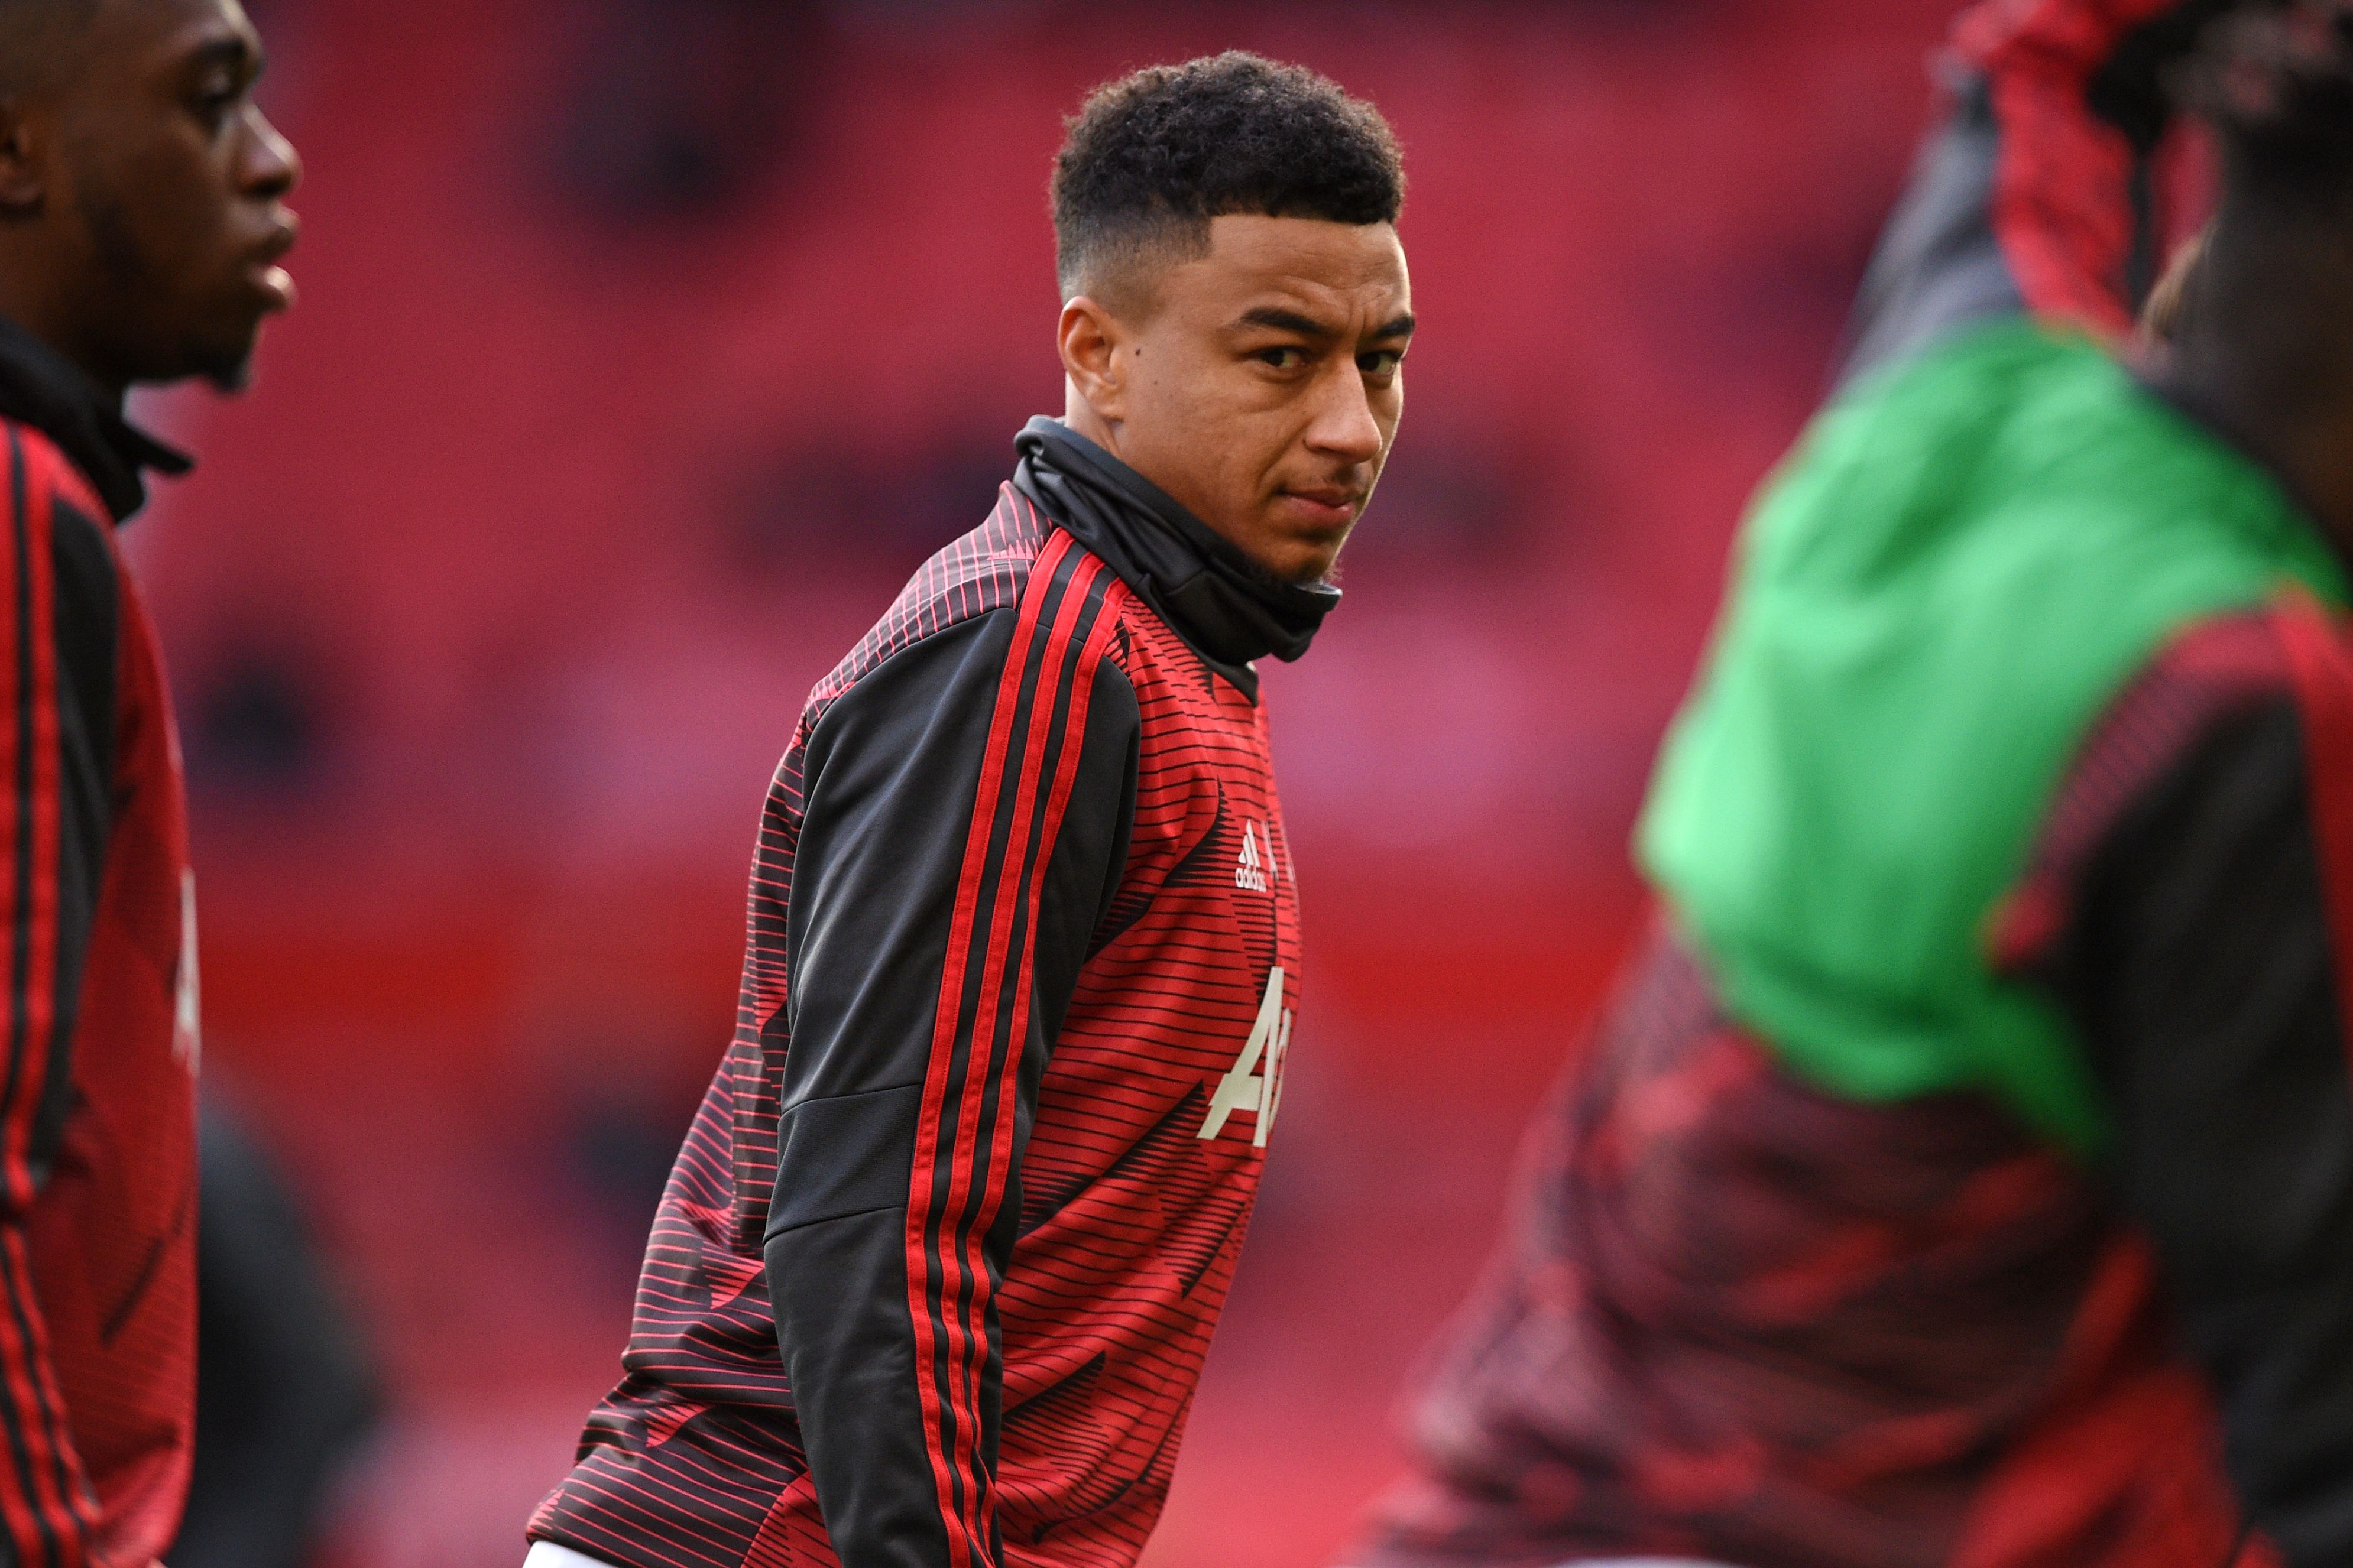 Jesse Lingard is among four players expected to leave Man United - Ready for a new challenge.